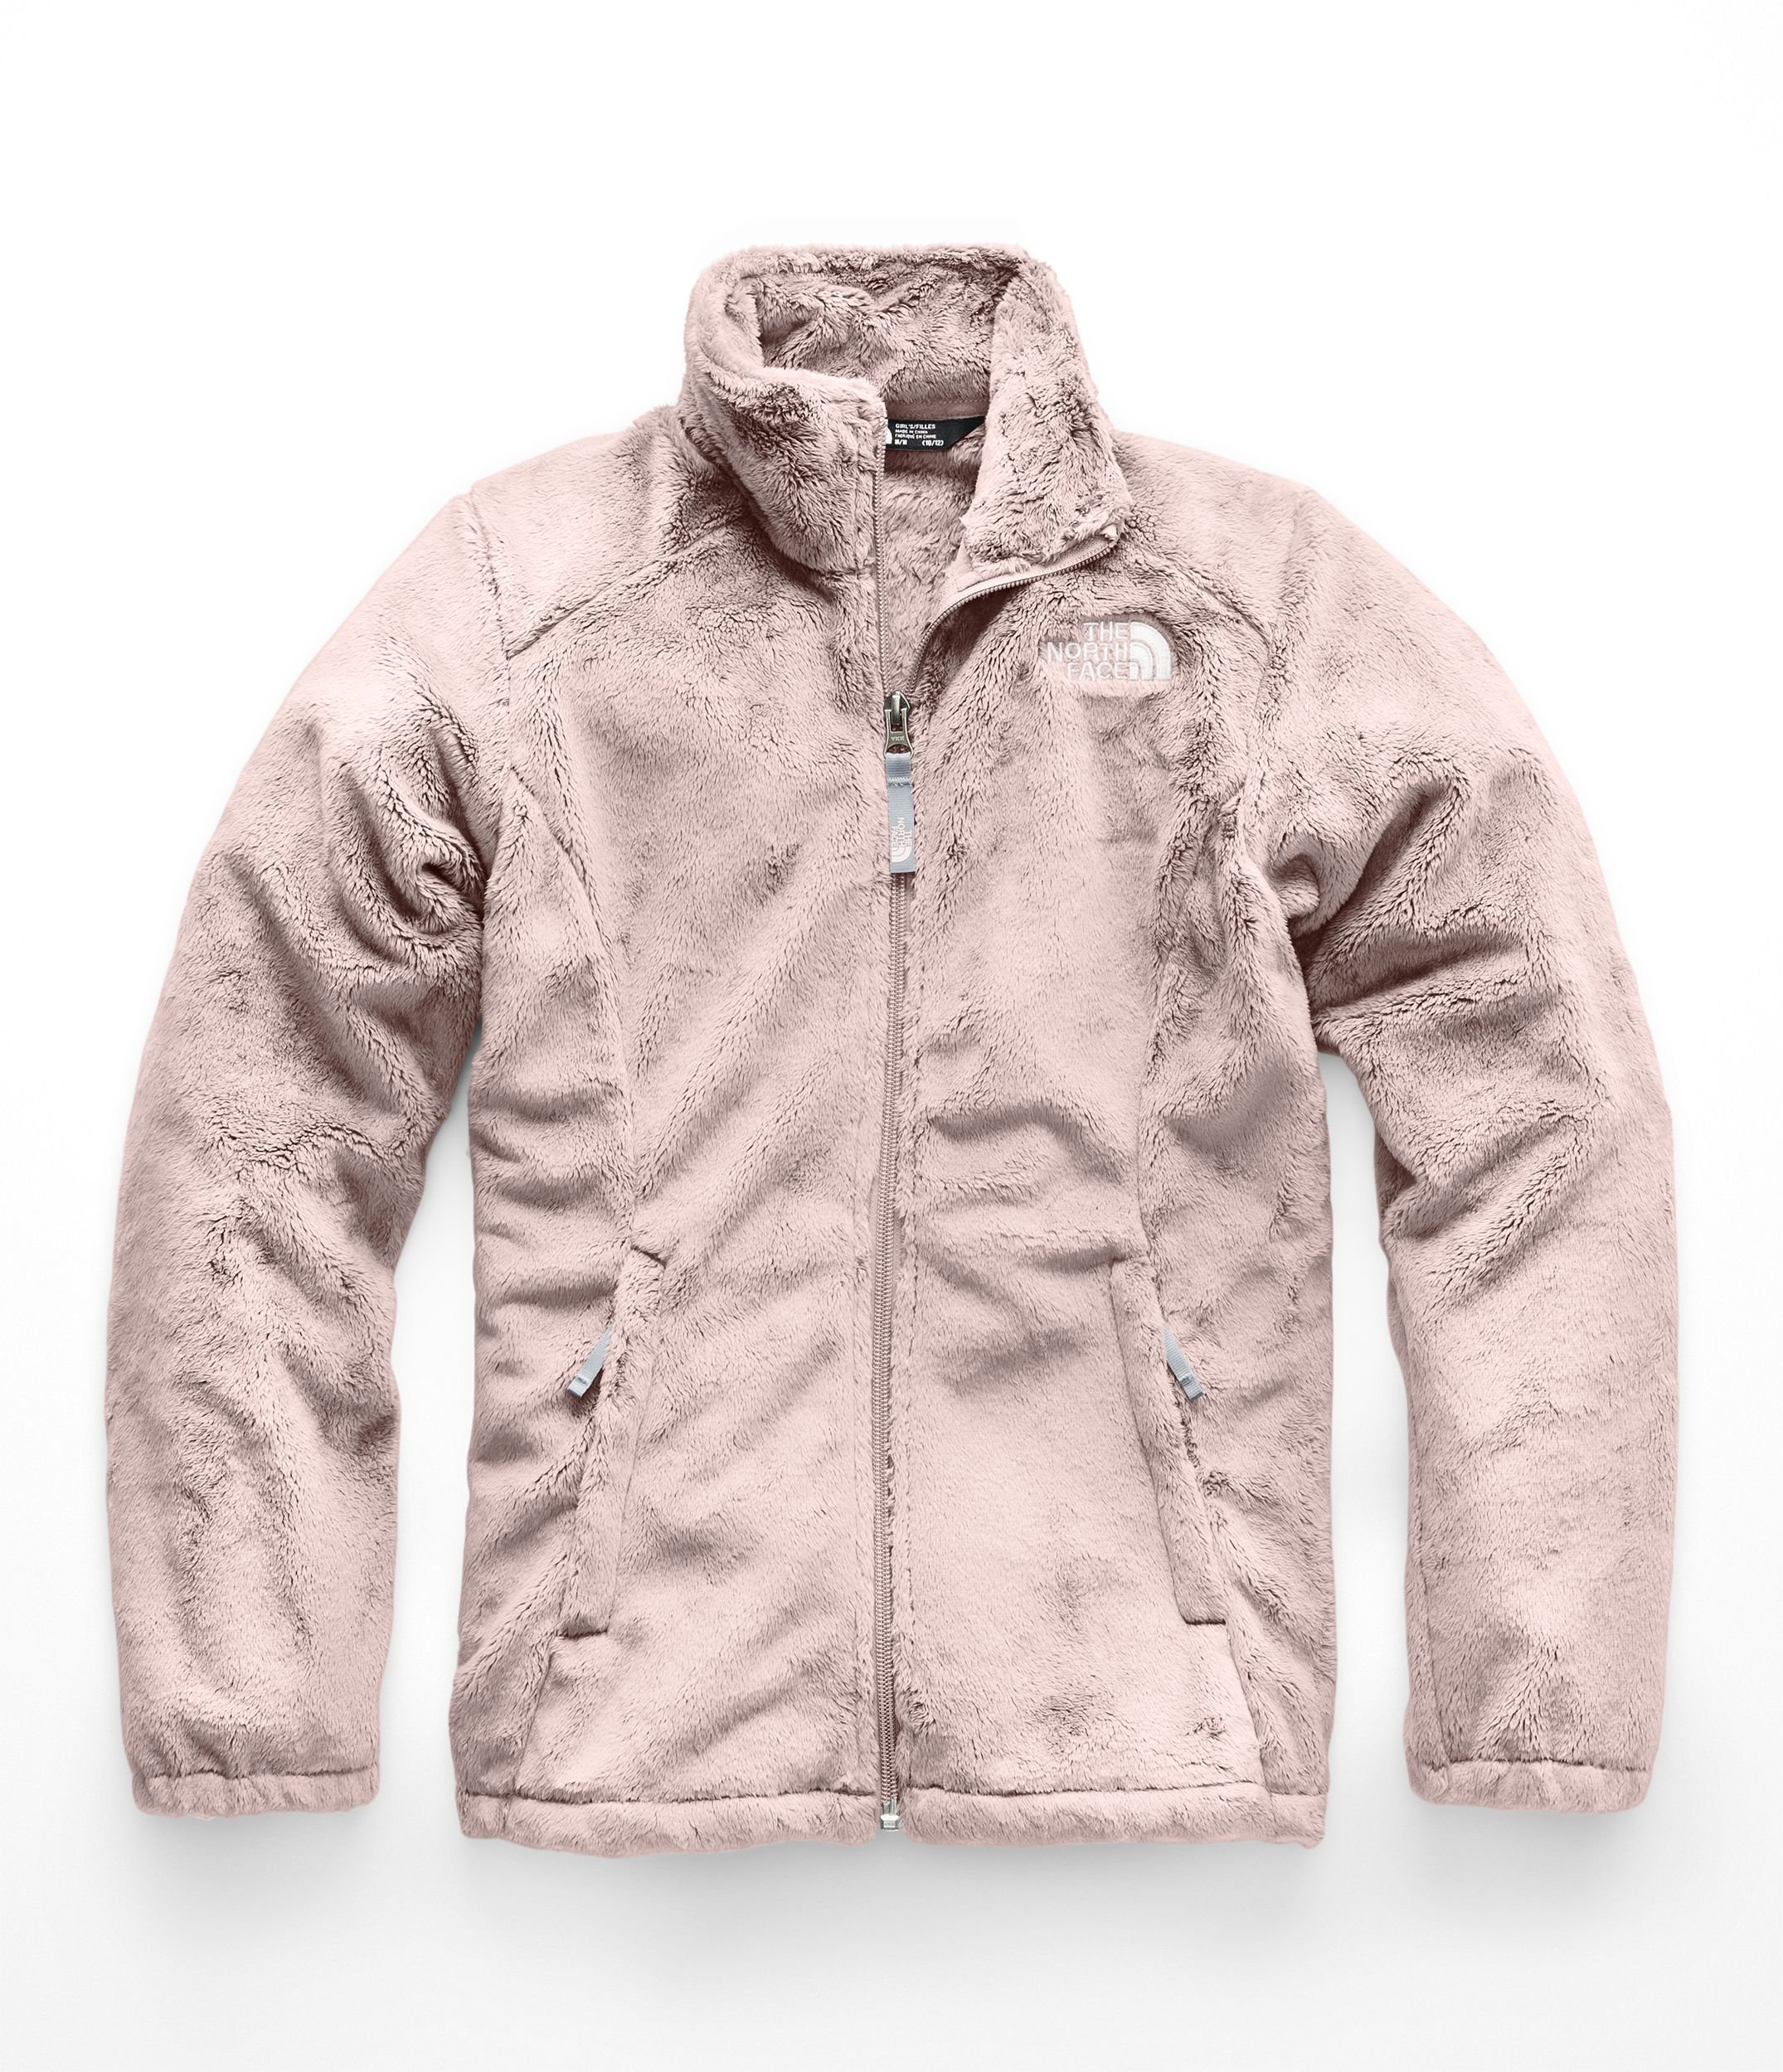 The North Face Girls Osolita Jacket - Purdy Pink - L